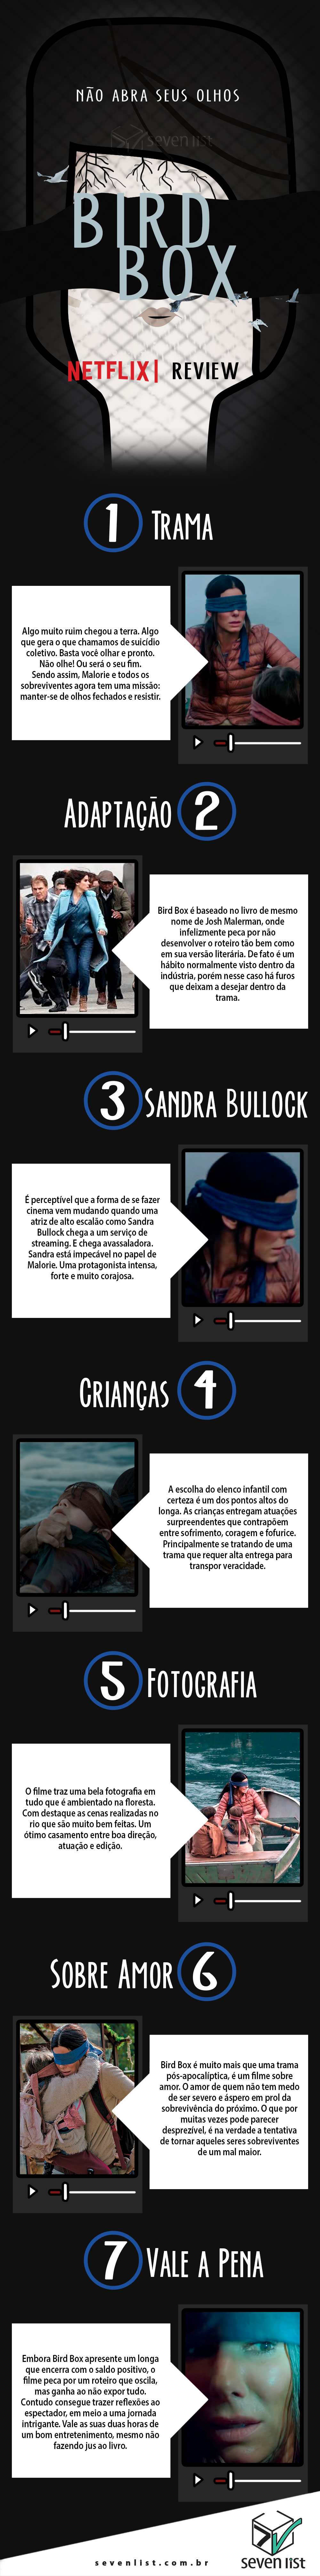 crítica de bird box